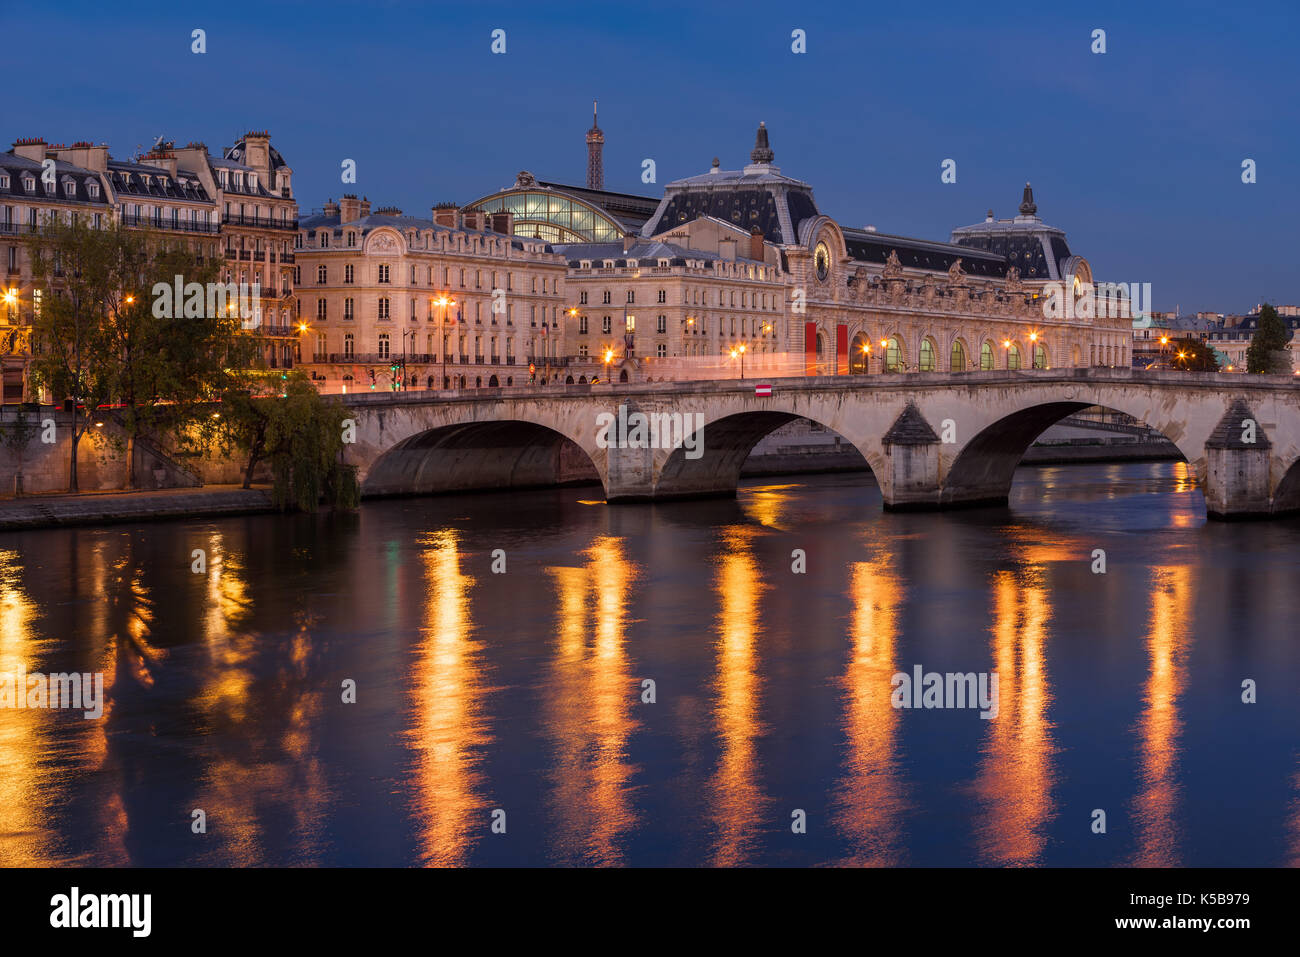 Seine River banks, Pont Royal bridge and Orsay Museum at daybreak. Paris, 7th Arrondissement, France - Stock Image